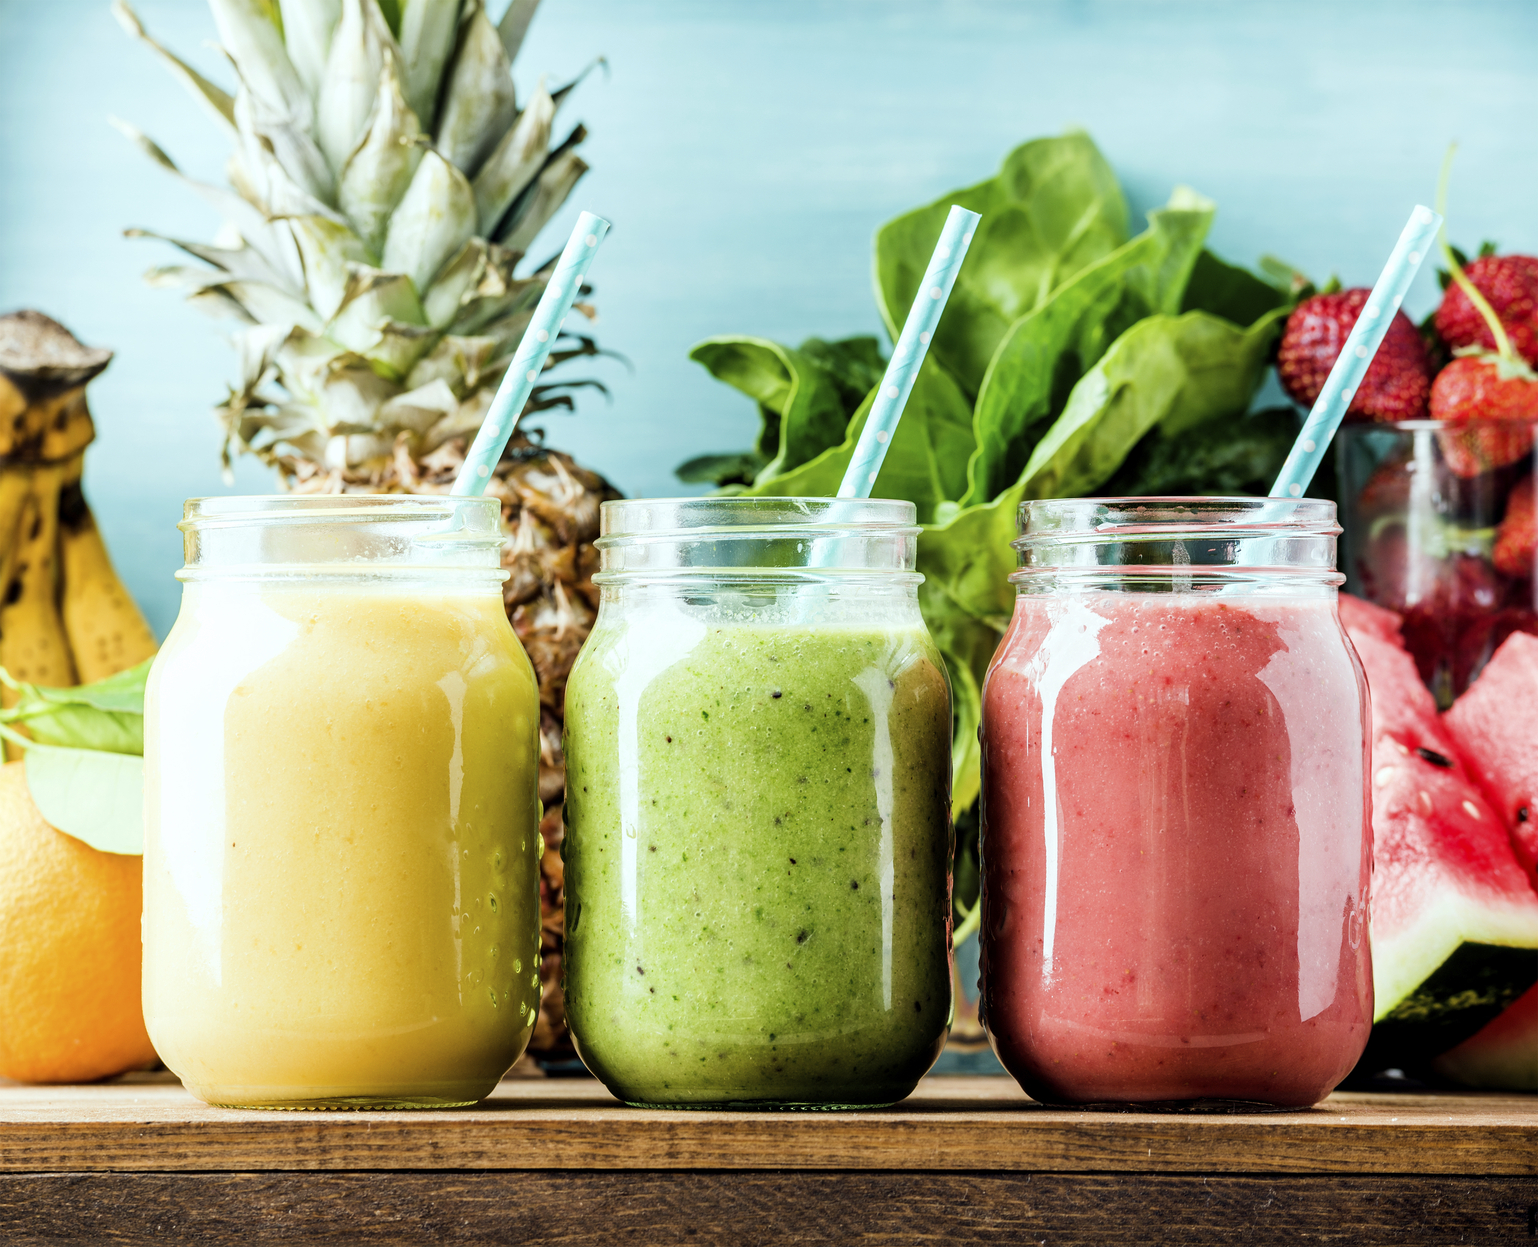 Are fresh juice drinks as healthy as they seem? photo